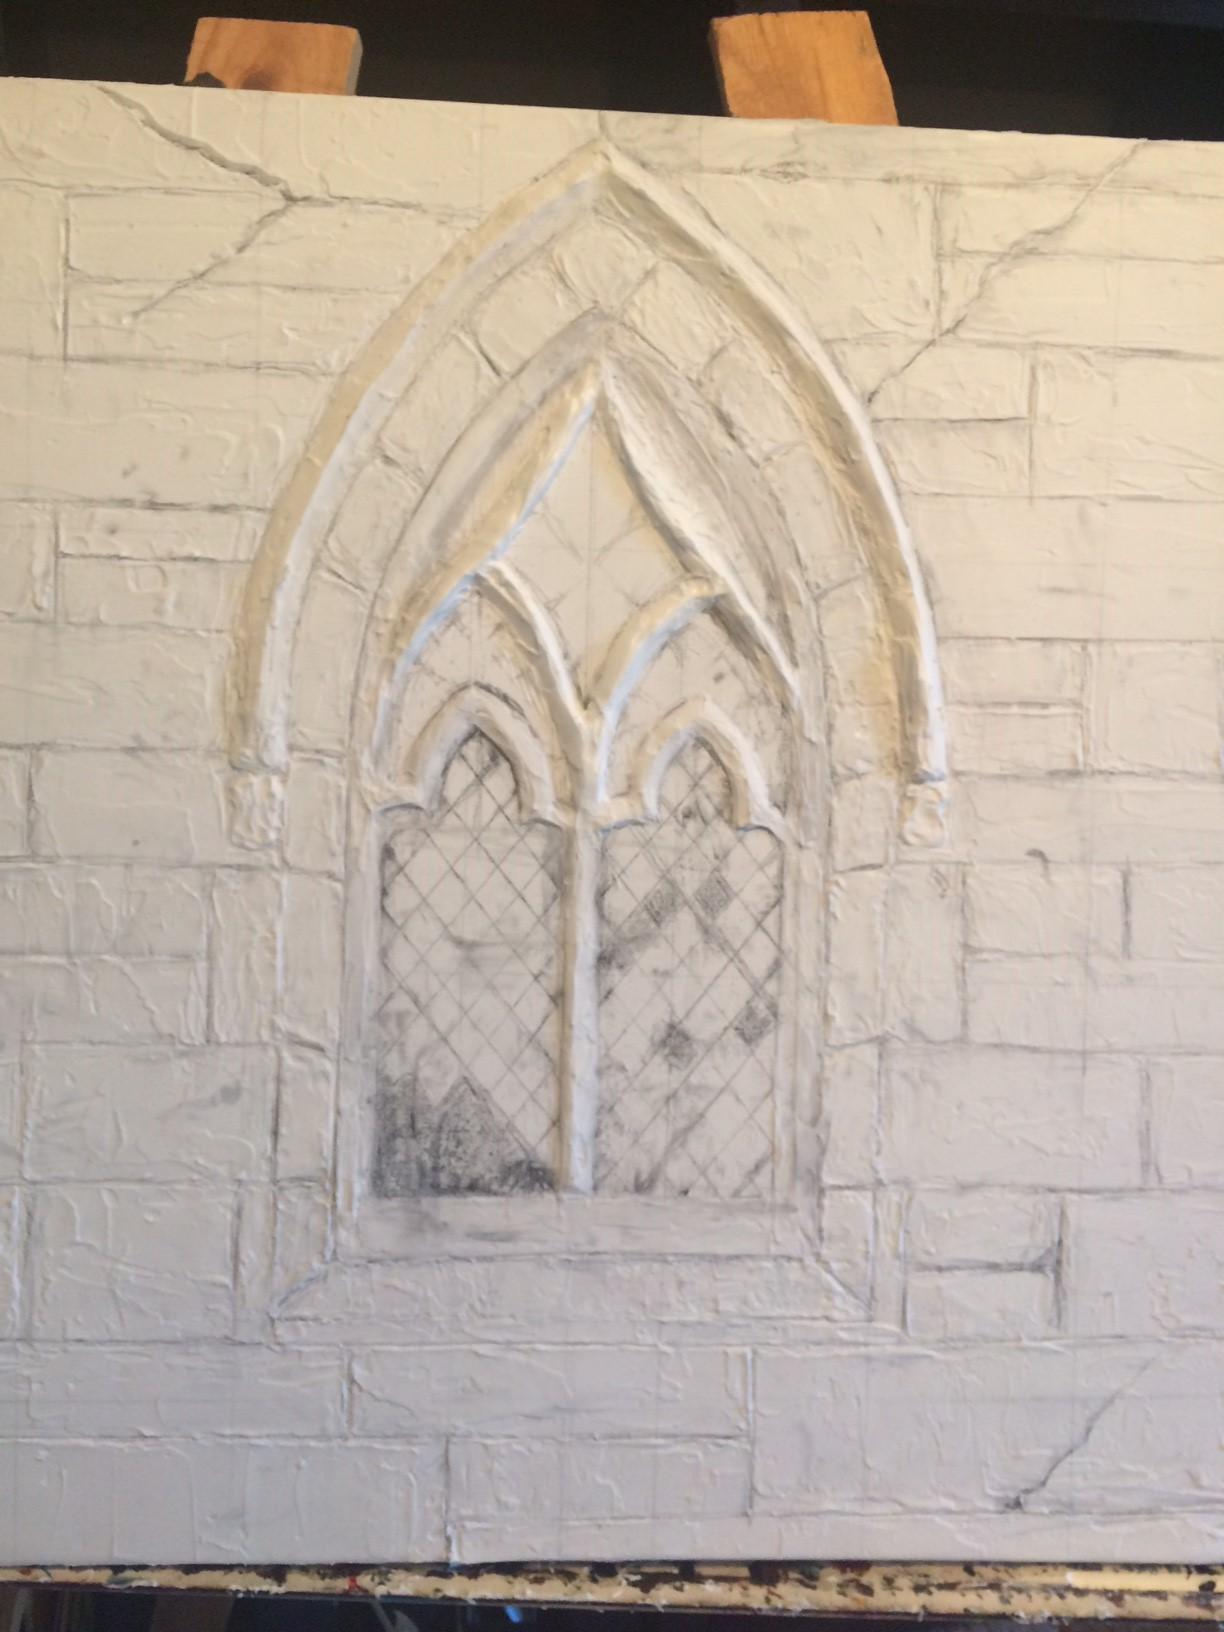 Continued adding modeling paste over entire canvas to represent texture of stone.